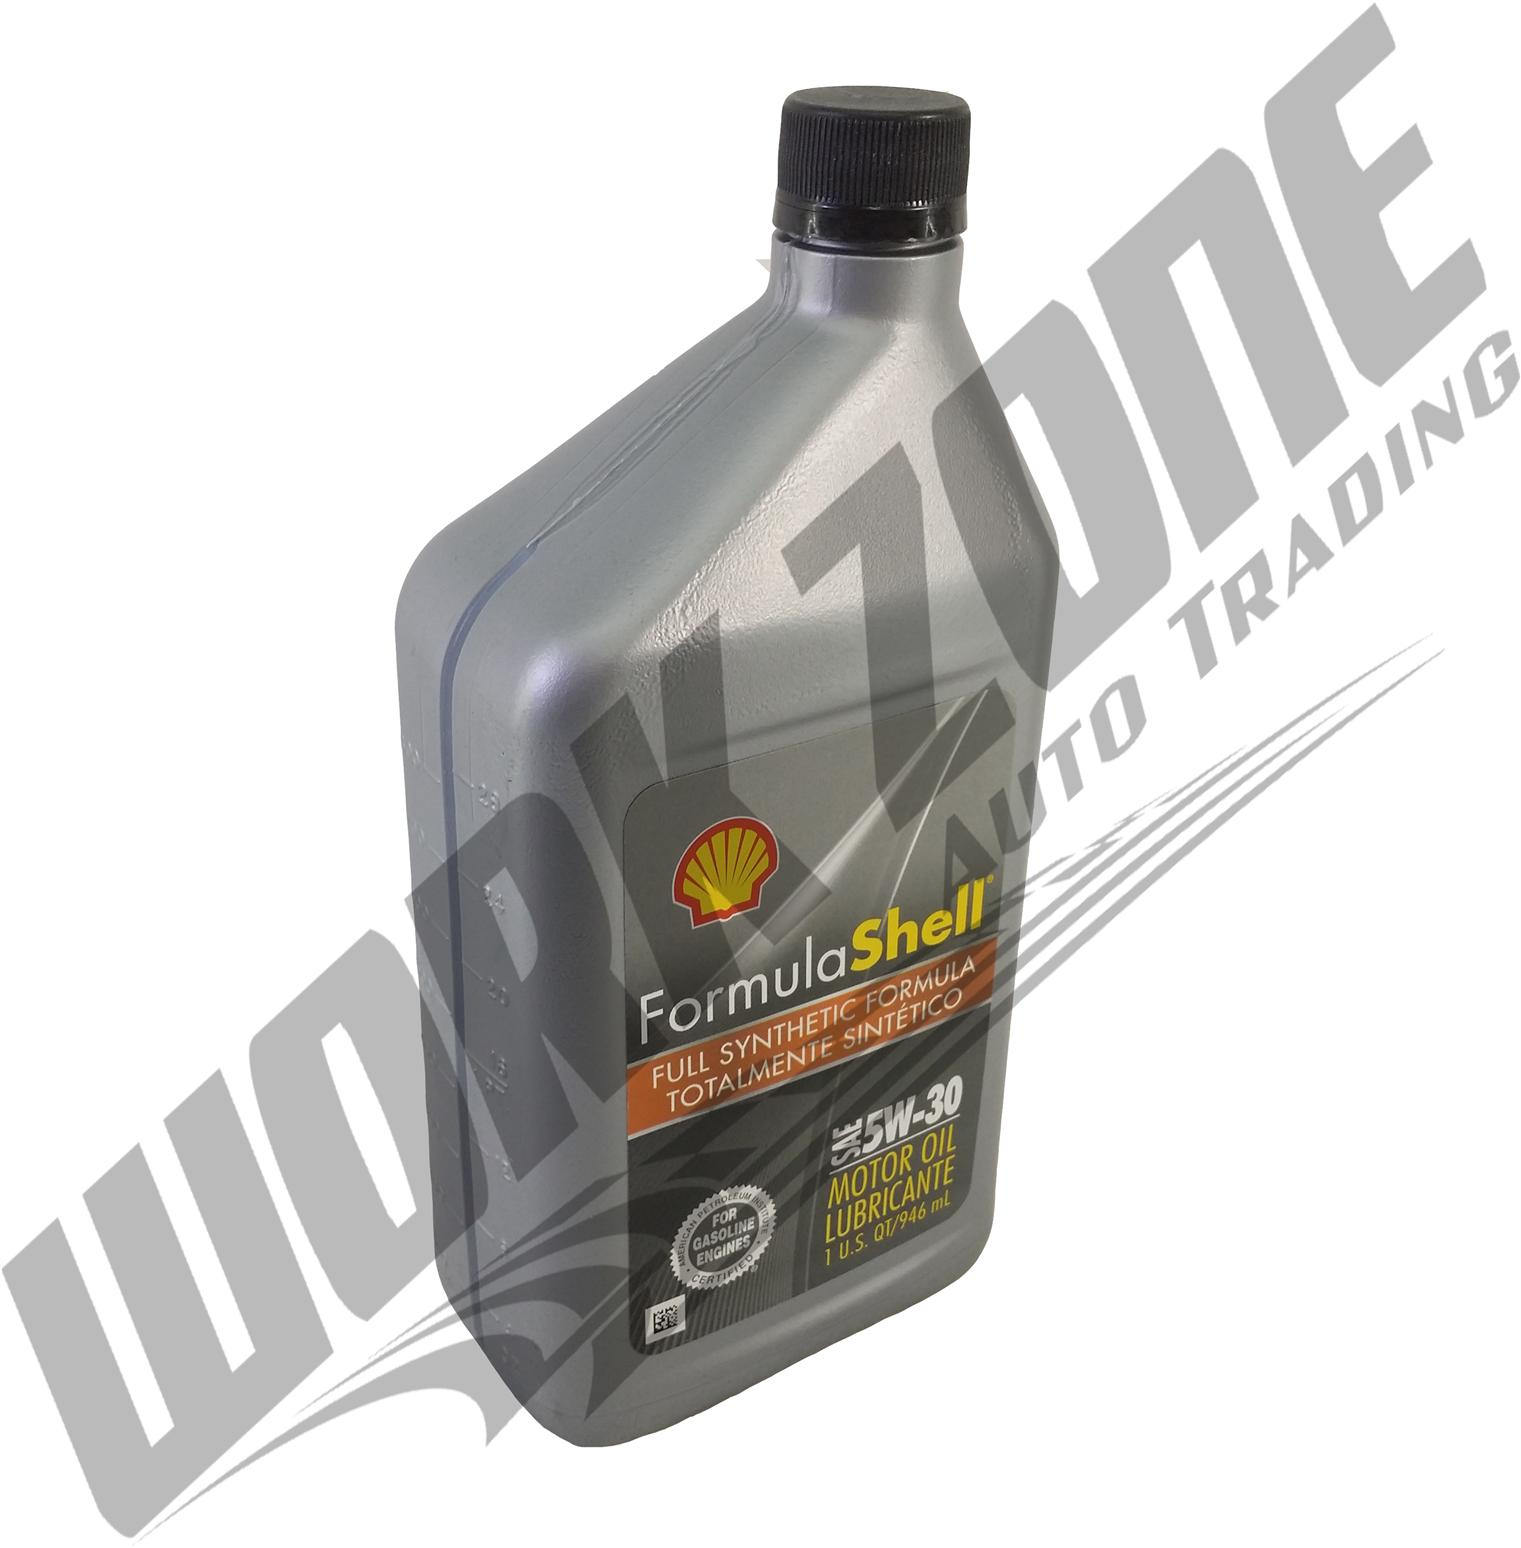 Shell 5w30 fully synthetic en end 7 13 2017 1 03 pm myt for 5w30 fully synthetic motor oil